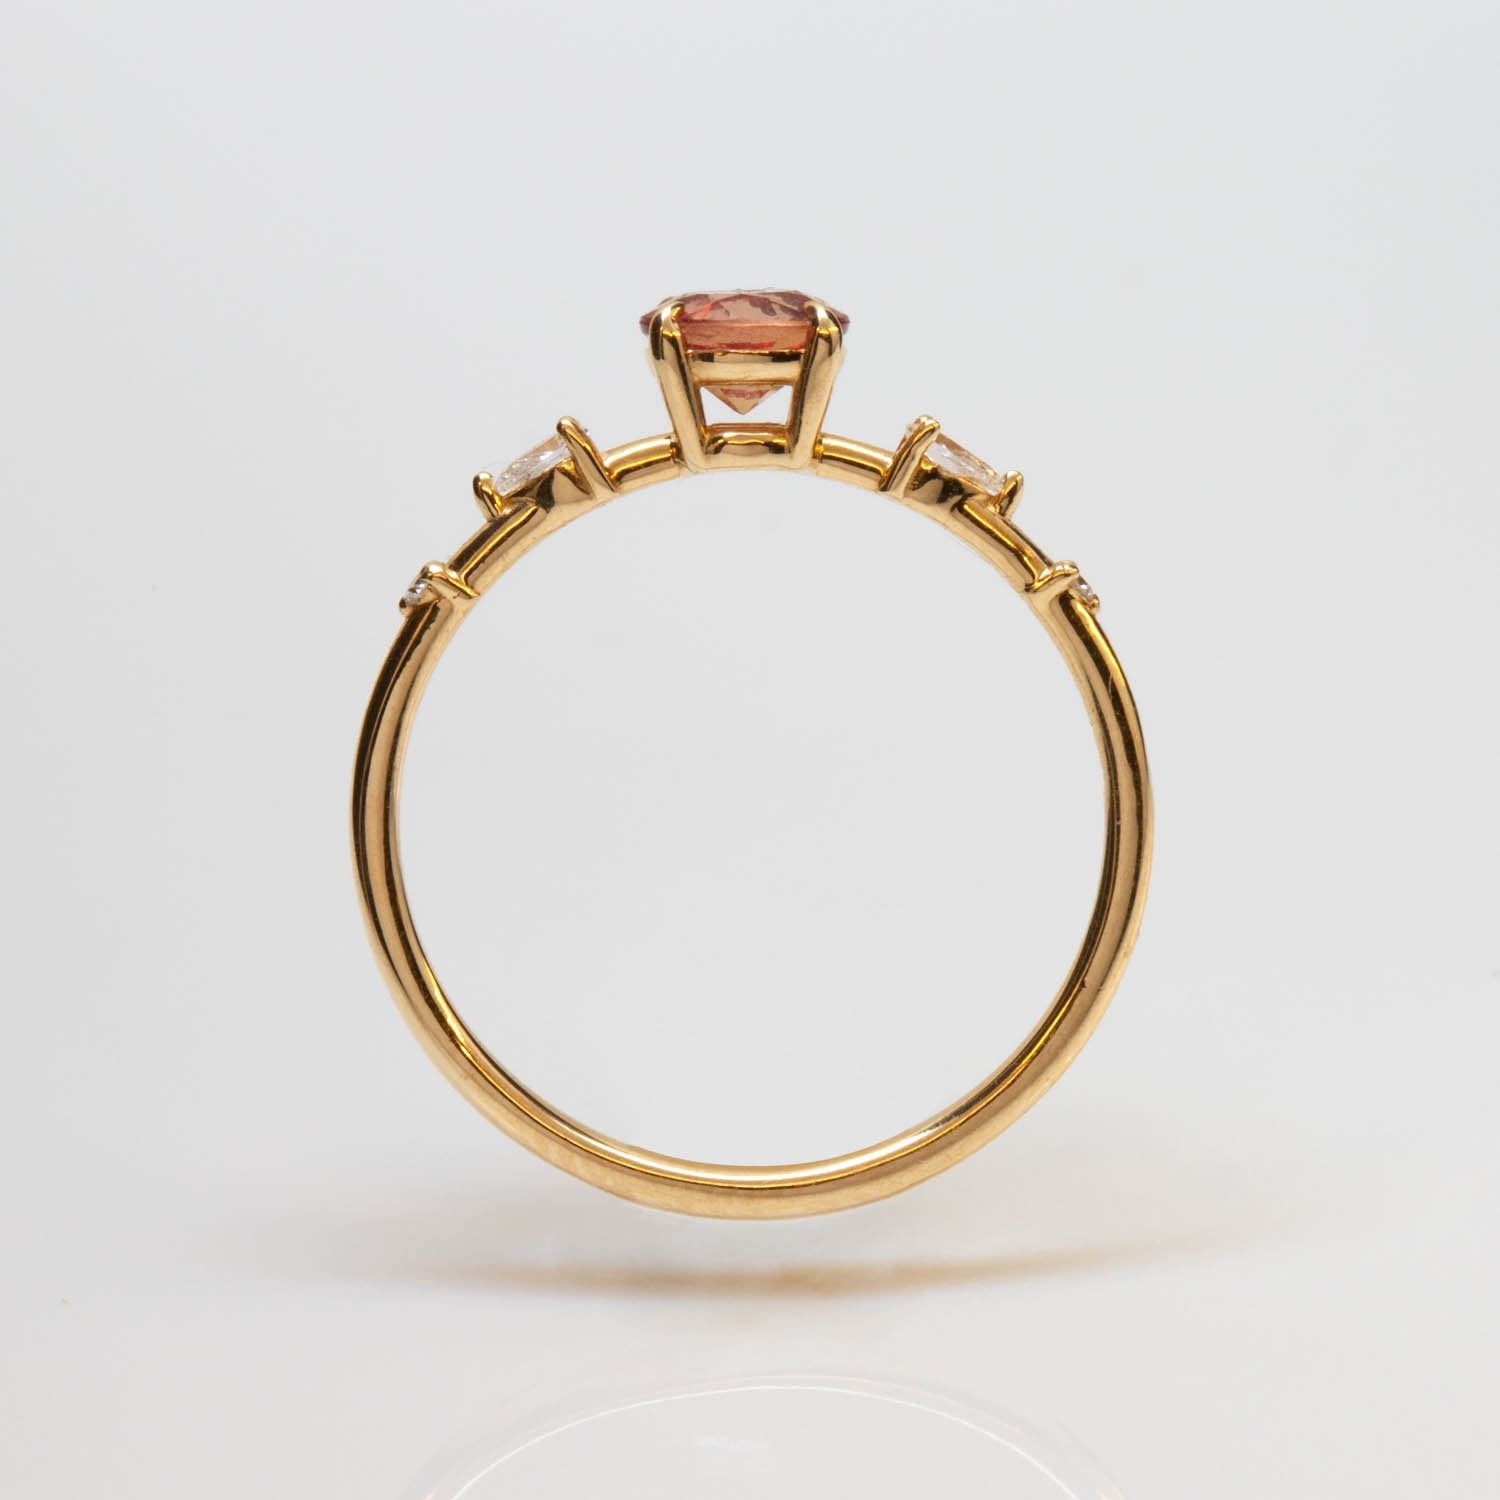 One of a Kind Daybreak Dahlia Ring - 14k Yellow Gold, Peach Sapphire, White Diamond